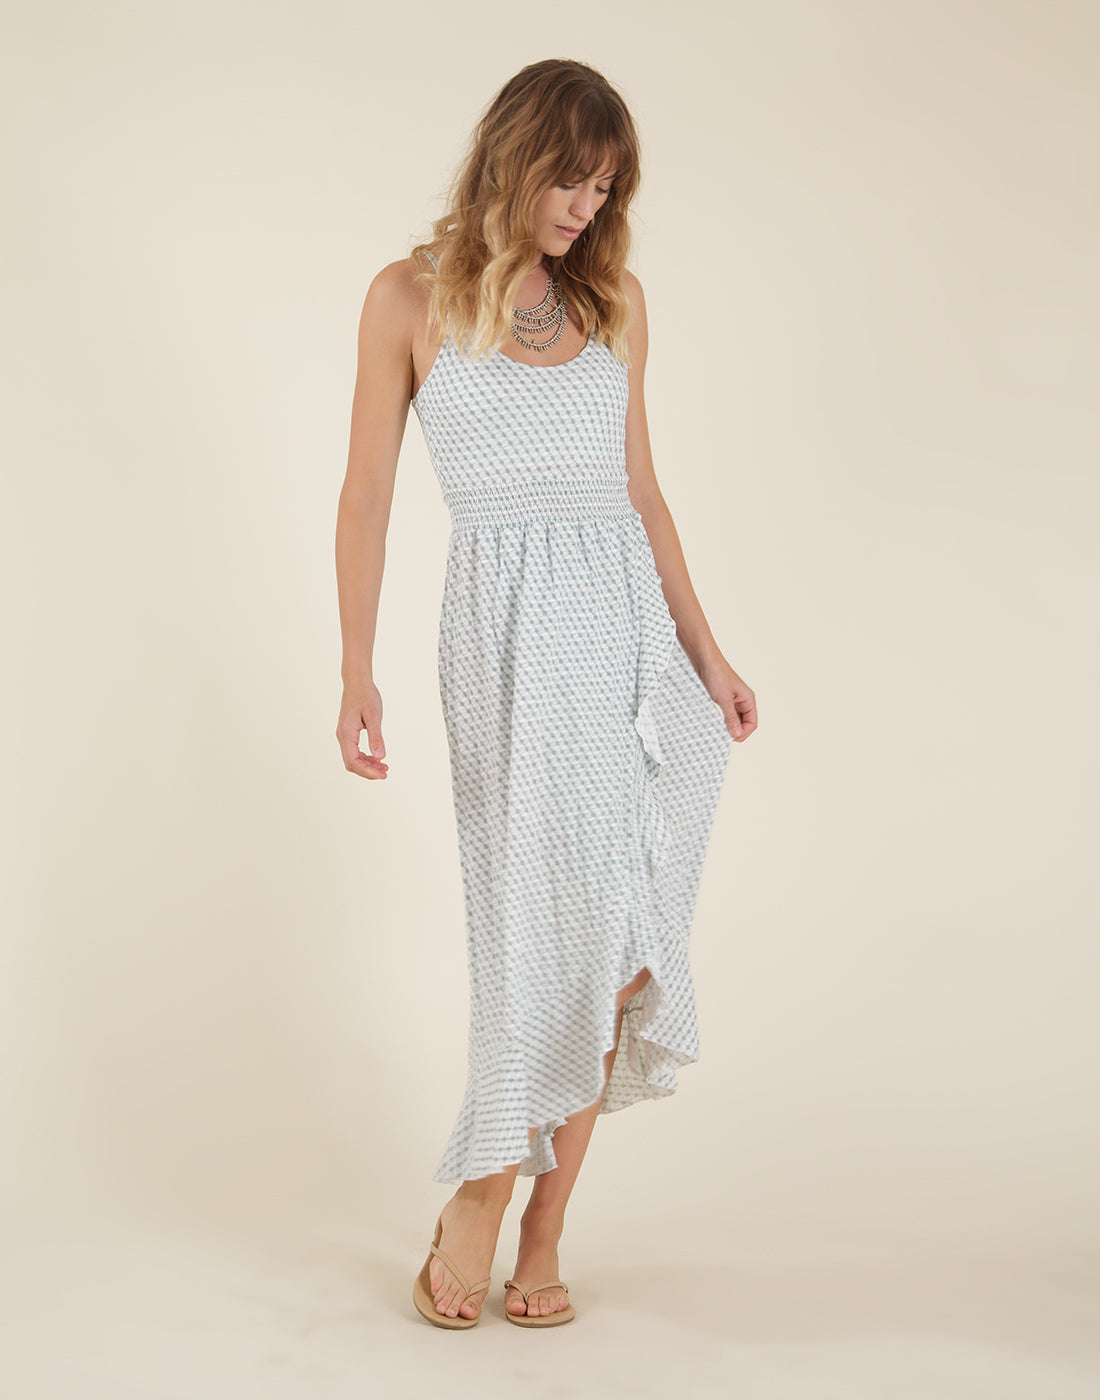 Nora Dress: Thyme Paige